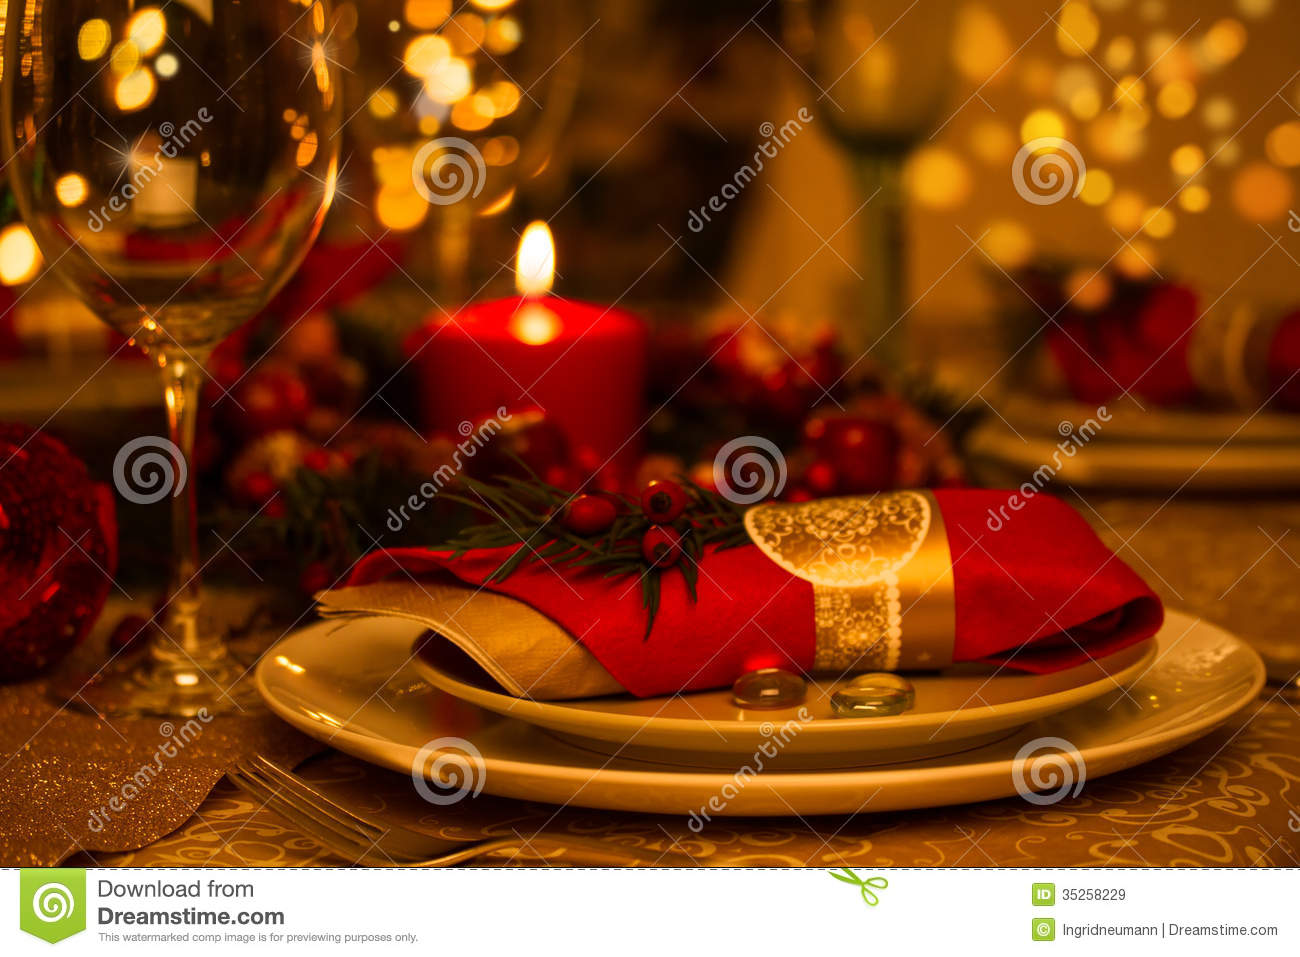 Christmas table decorations gold - Christmas Table Setting With Holiday Decorations